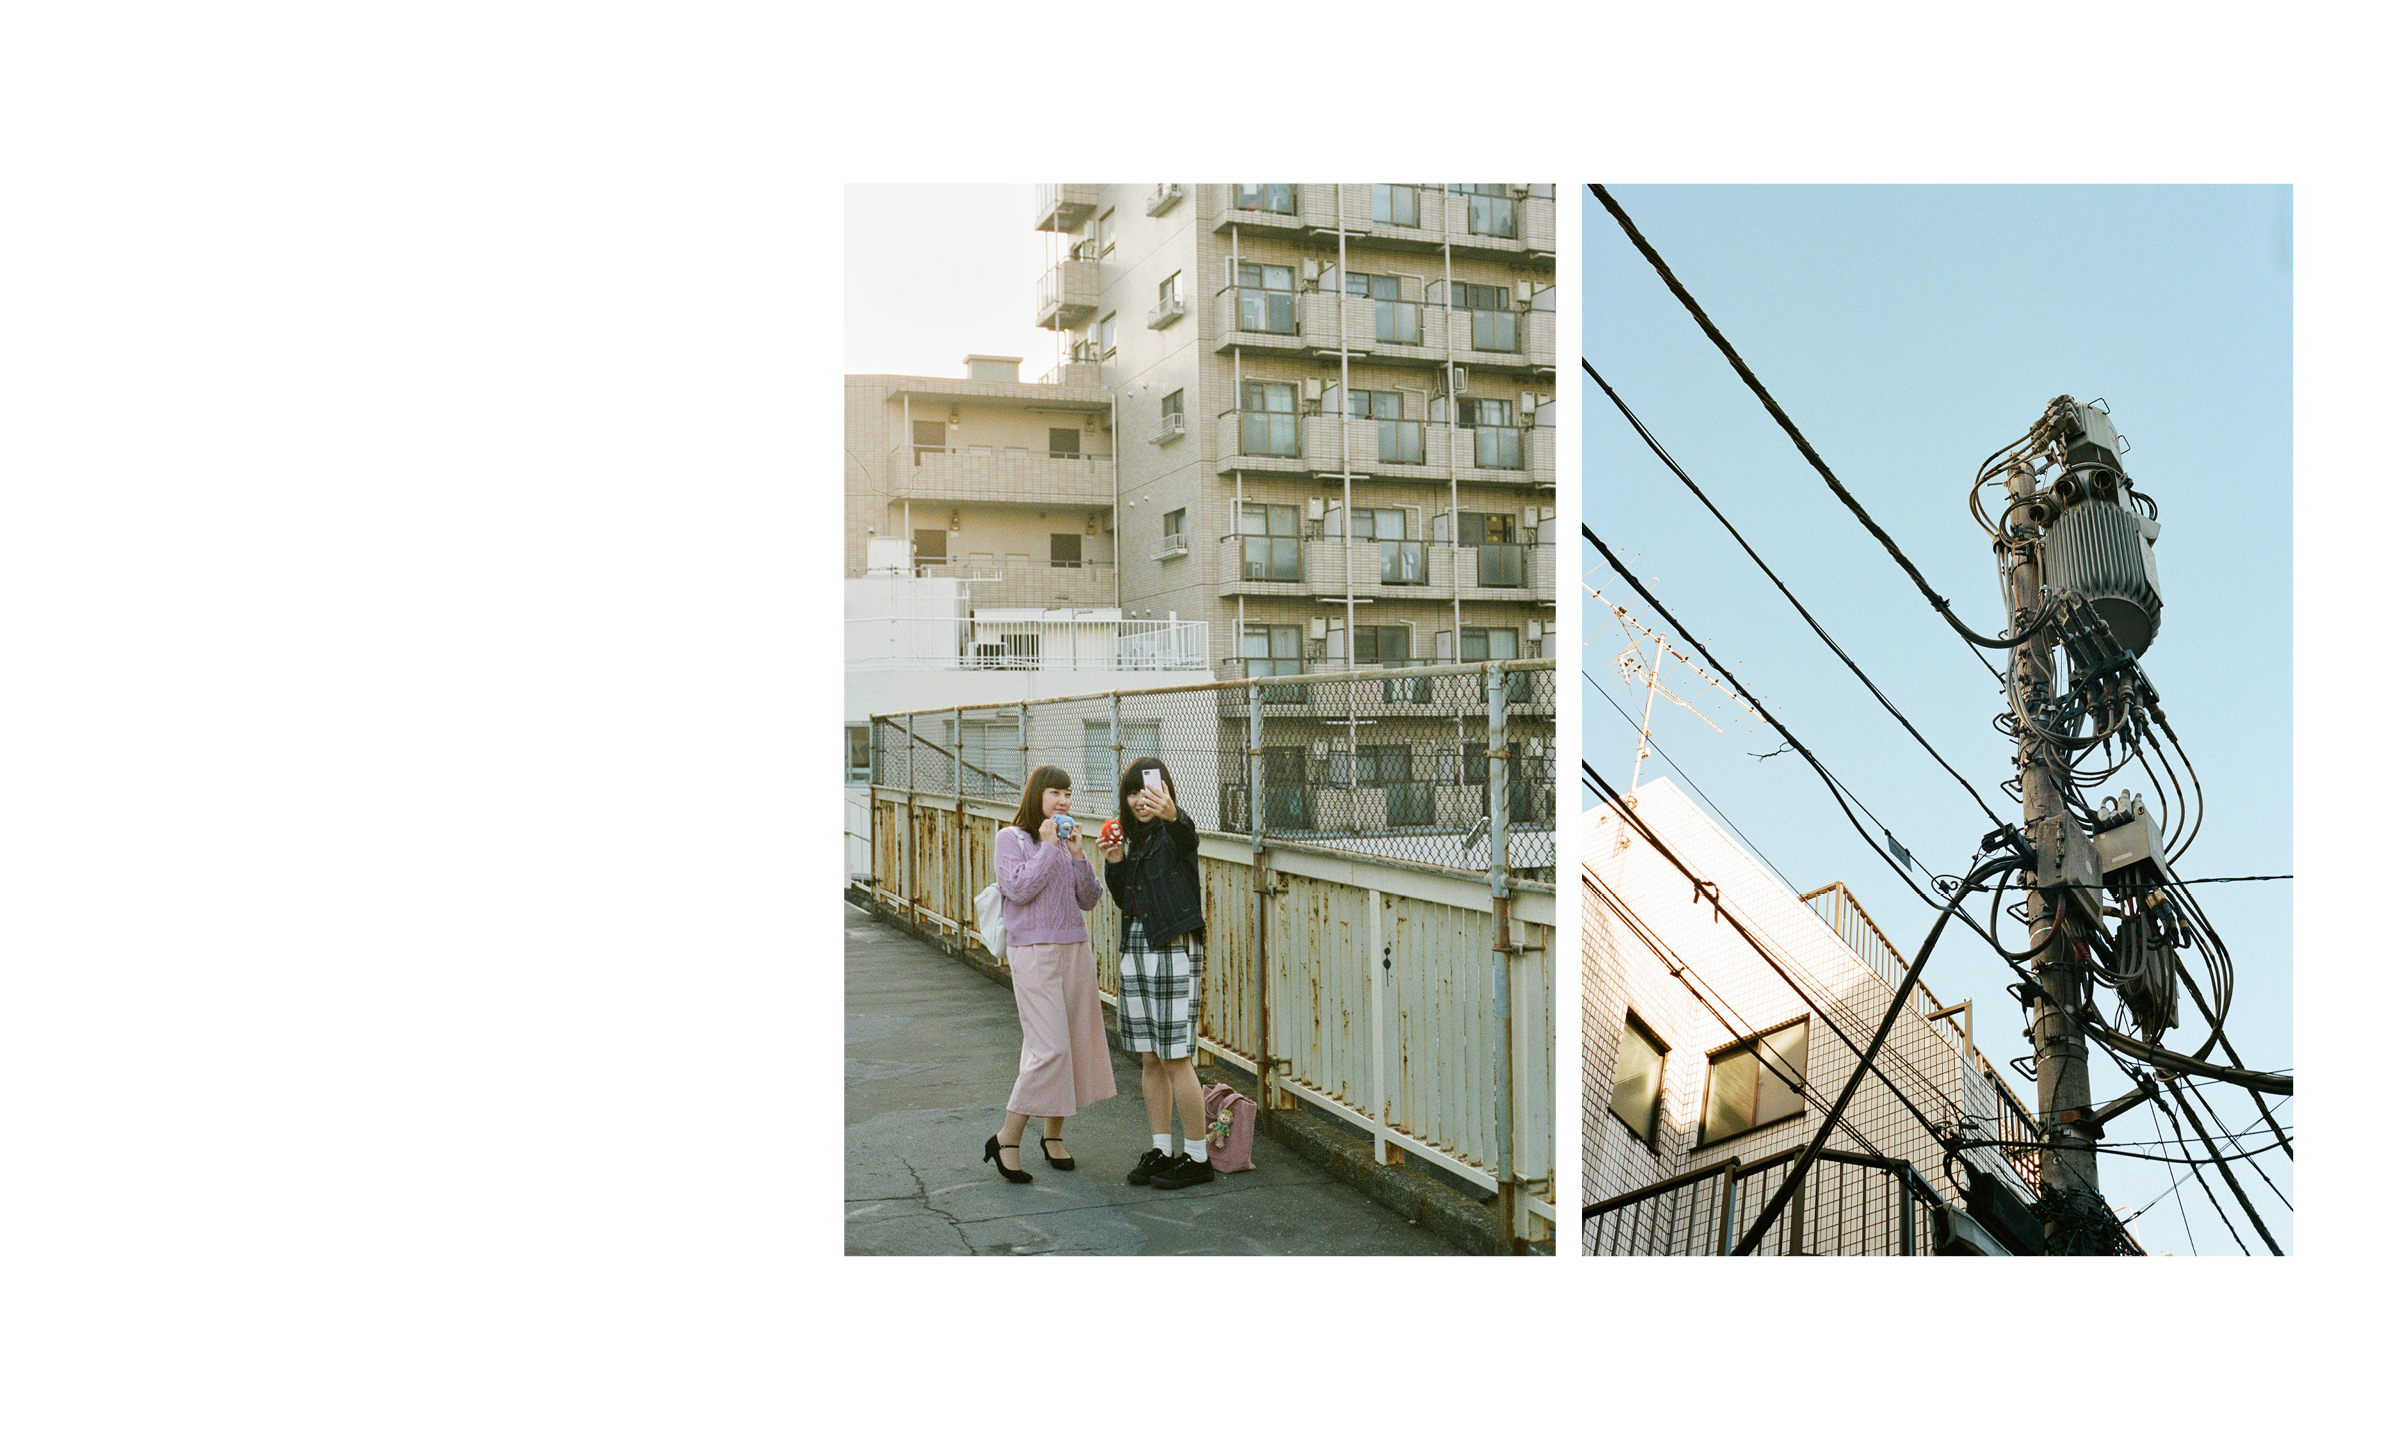 Tokyo_Photography_Case_Study_Layout27.jpg